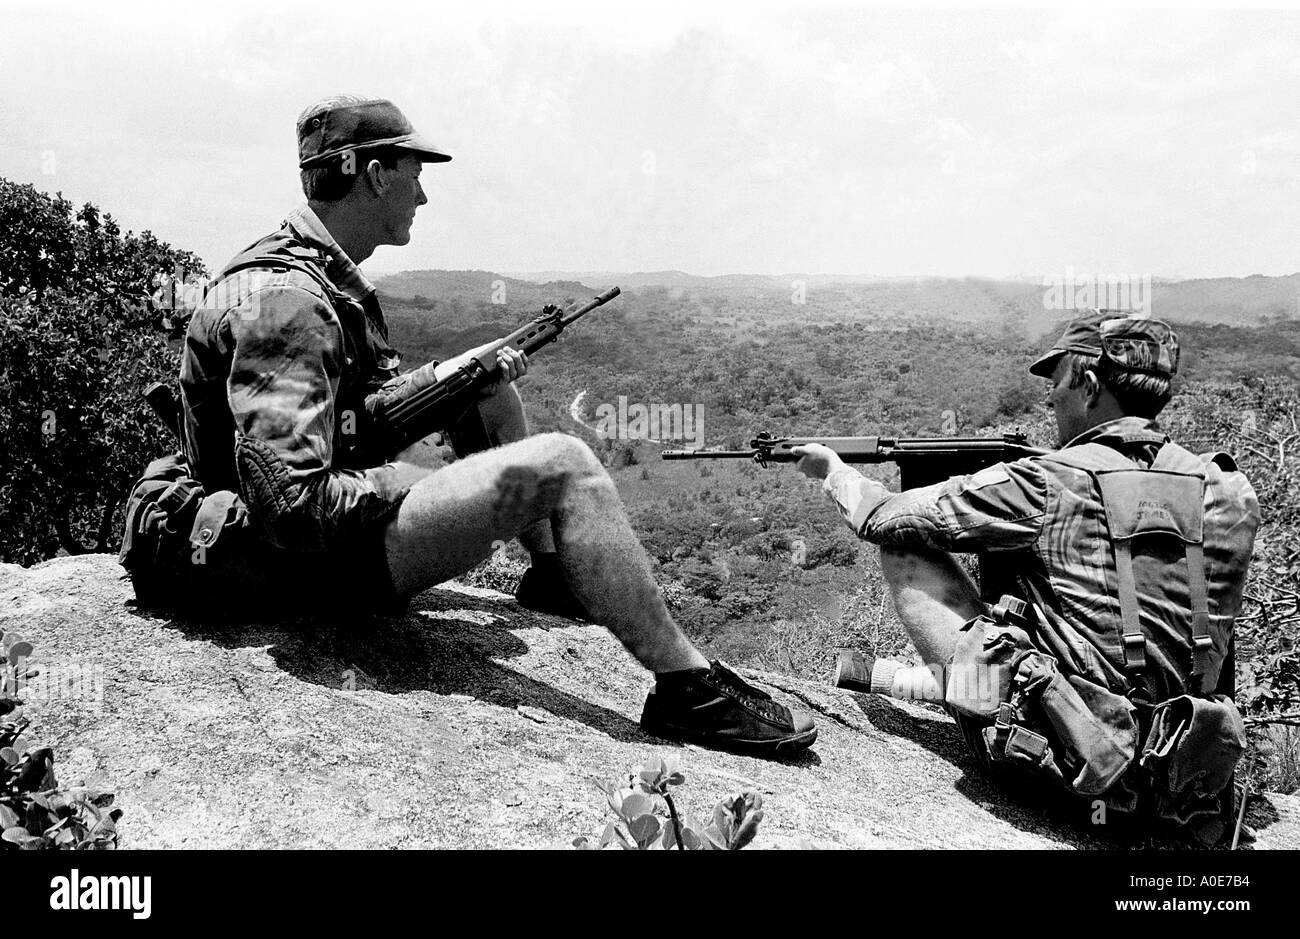 Rhodesian troops in the bush in 1975 during the UDI years of Ian Smiths Rhodesian Front. - Stock Image